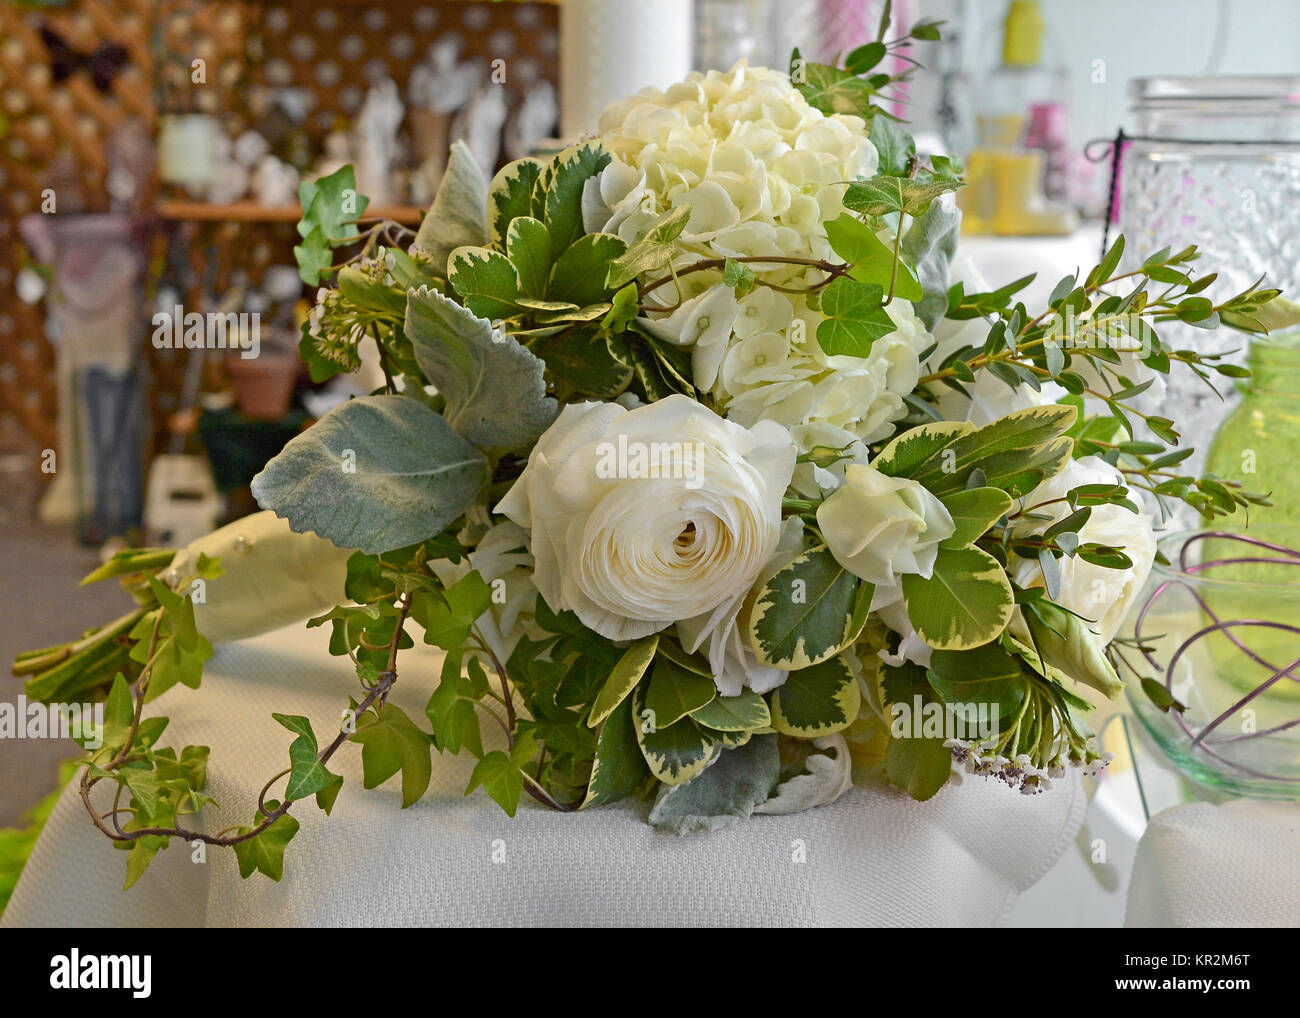 Photo Of White Garden Style Cascading Bridal Bouquet With Stock Photo Alamy